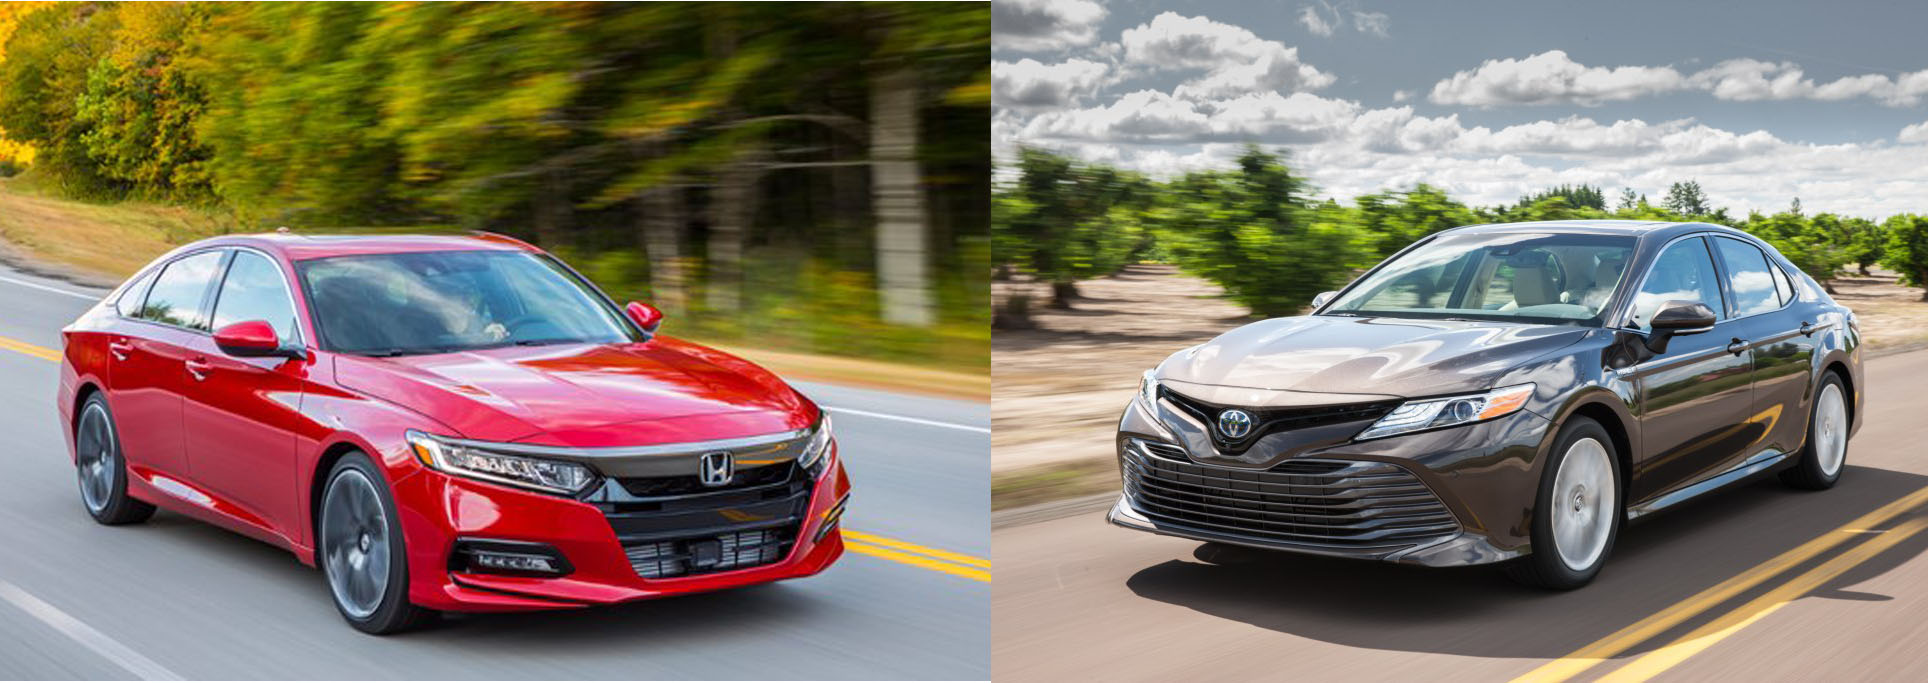 Toyota Camry Vs Honda Accord >> 2019 Toyota Camry Vs 2019 Honda Accord Quick Comparison